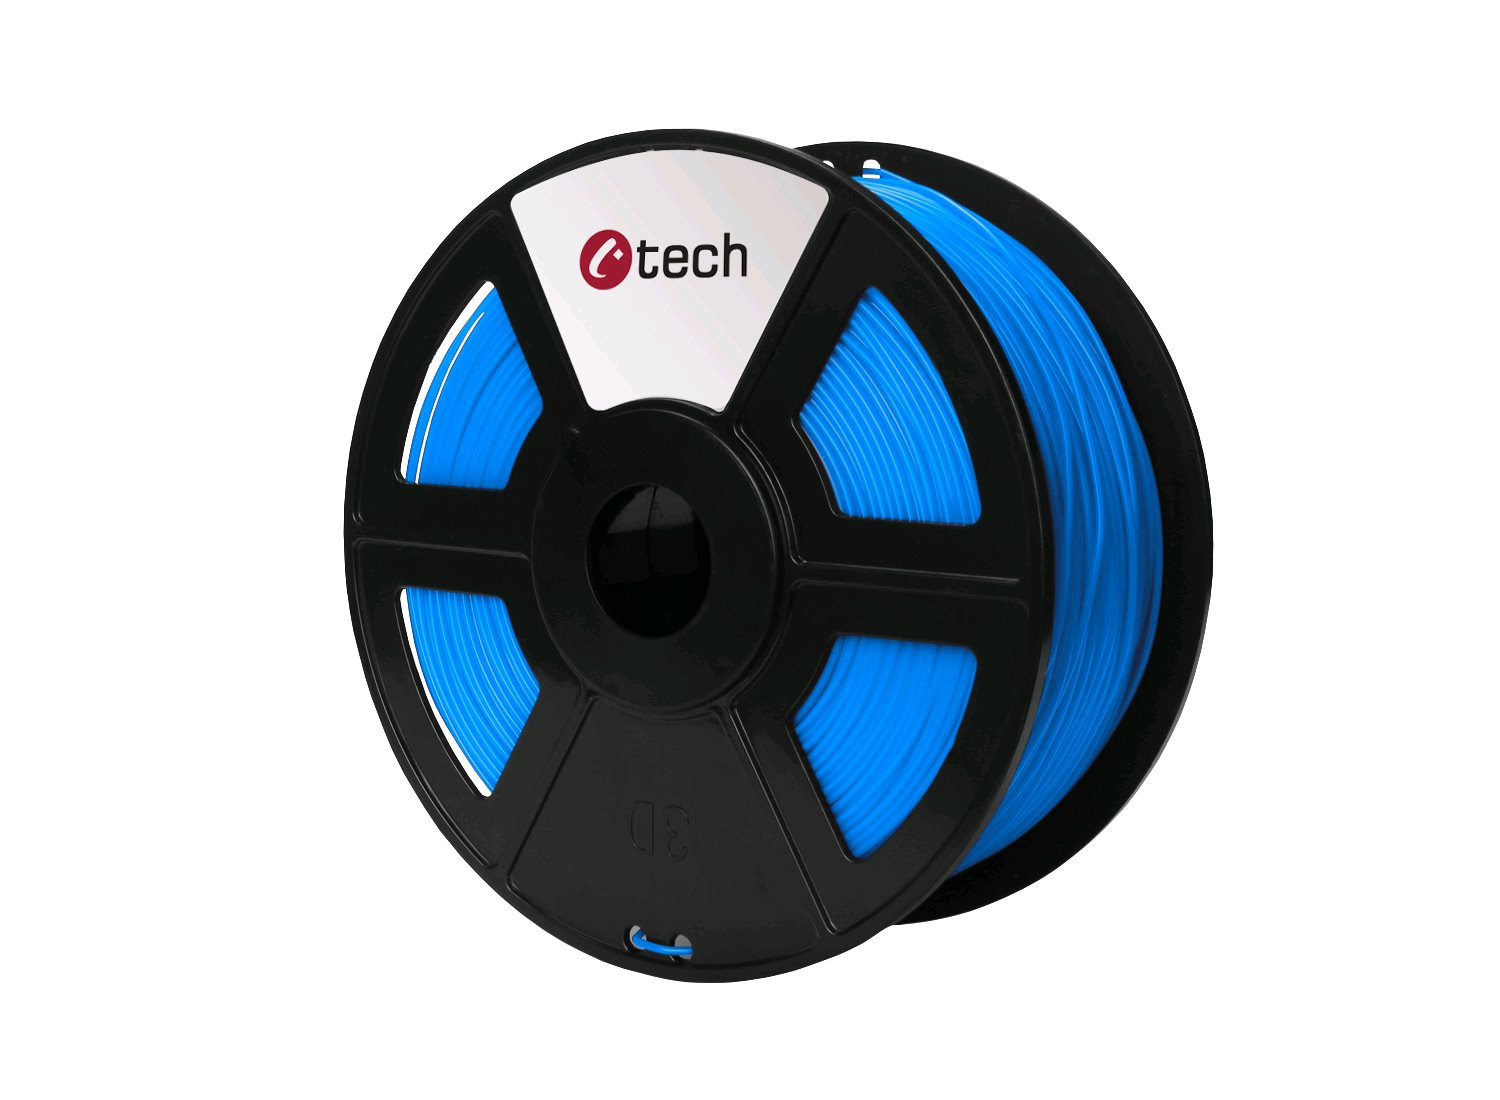 PETG filament modrá C-TECH, 1,75mm, 1kg